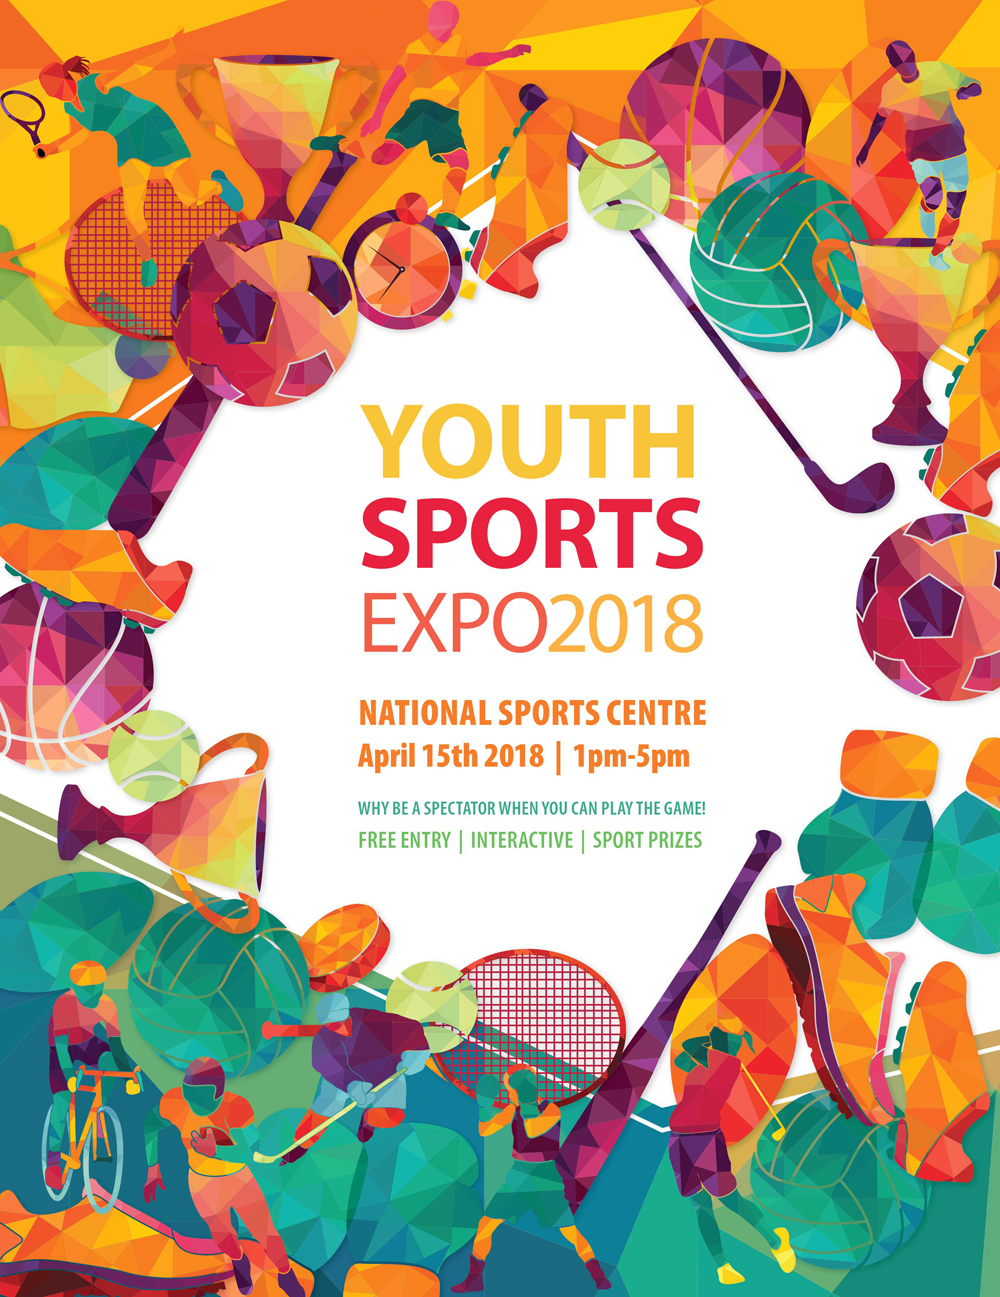 Youth sports expo Bermuda April 11 2018